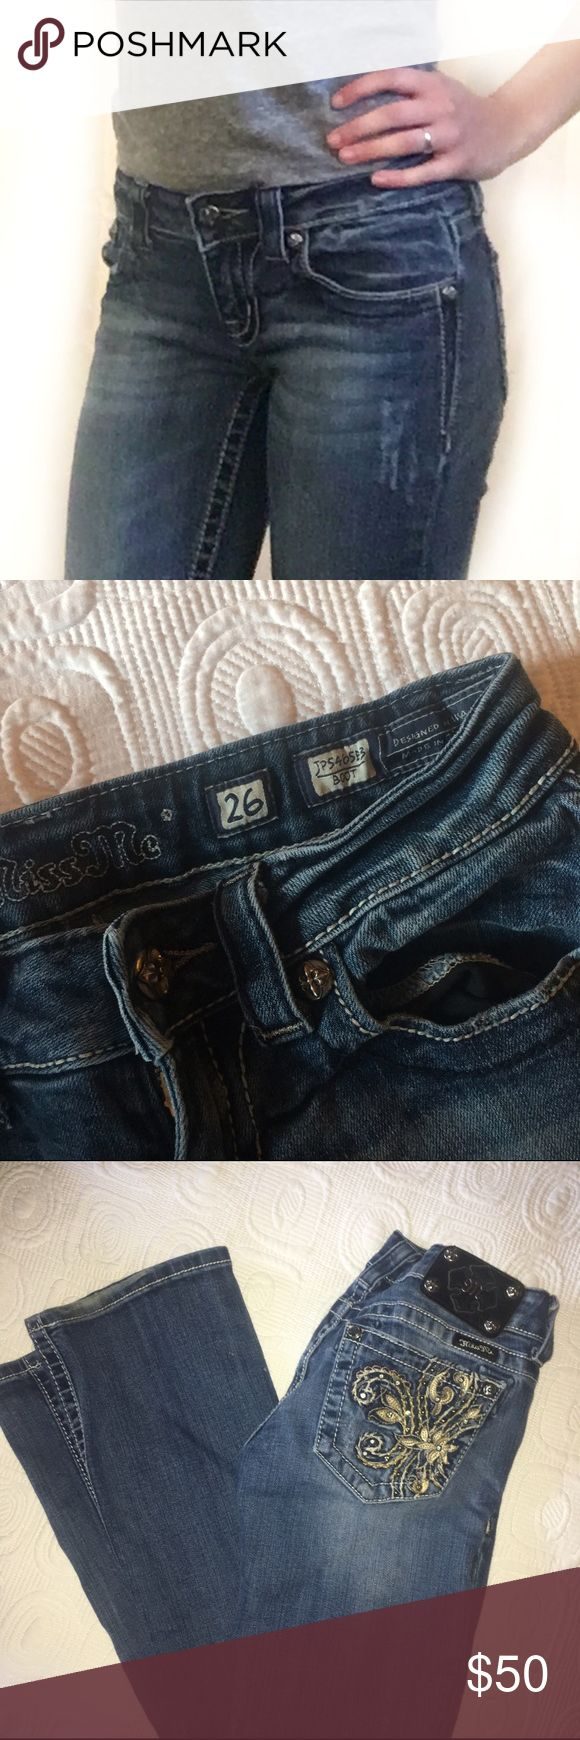 Miss Me Jeans Very good condition, boot cut miss me brand jeans. Size 26. Miss Me Jeans Boot Cut